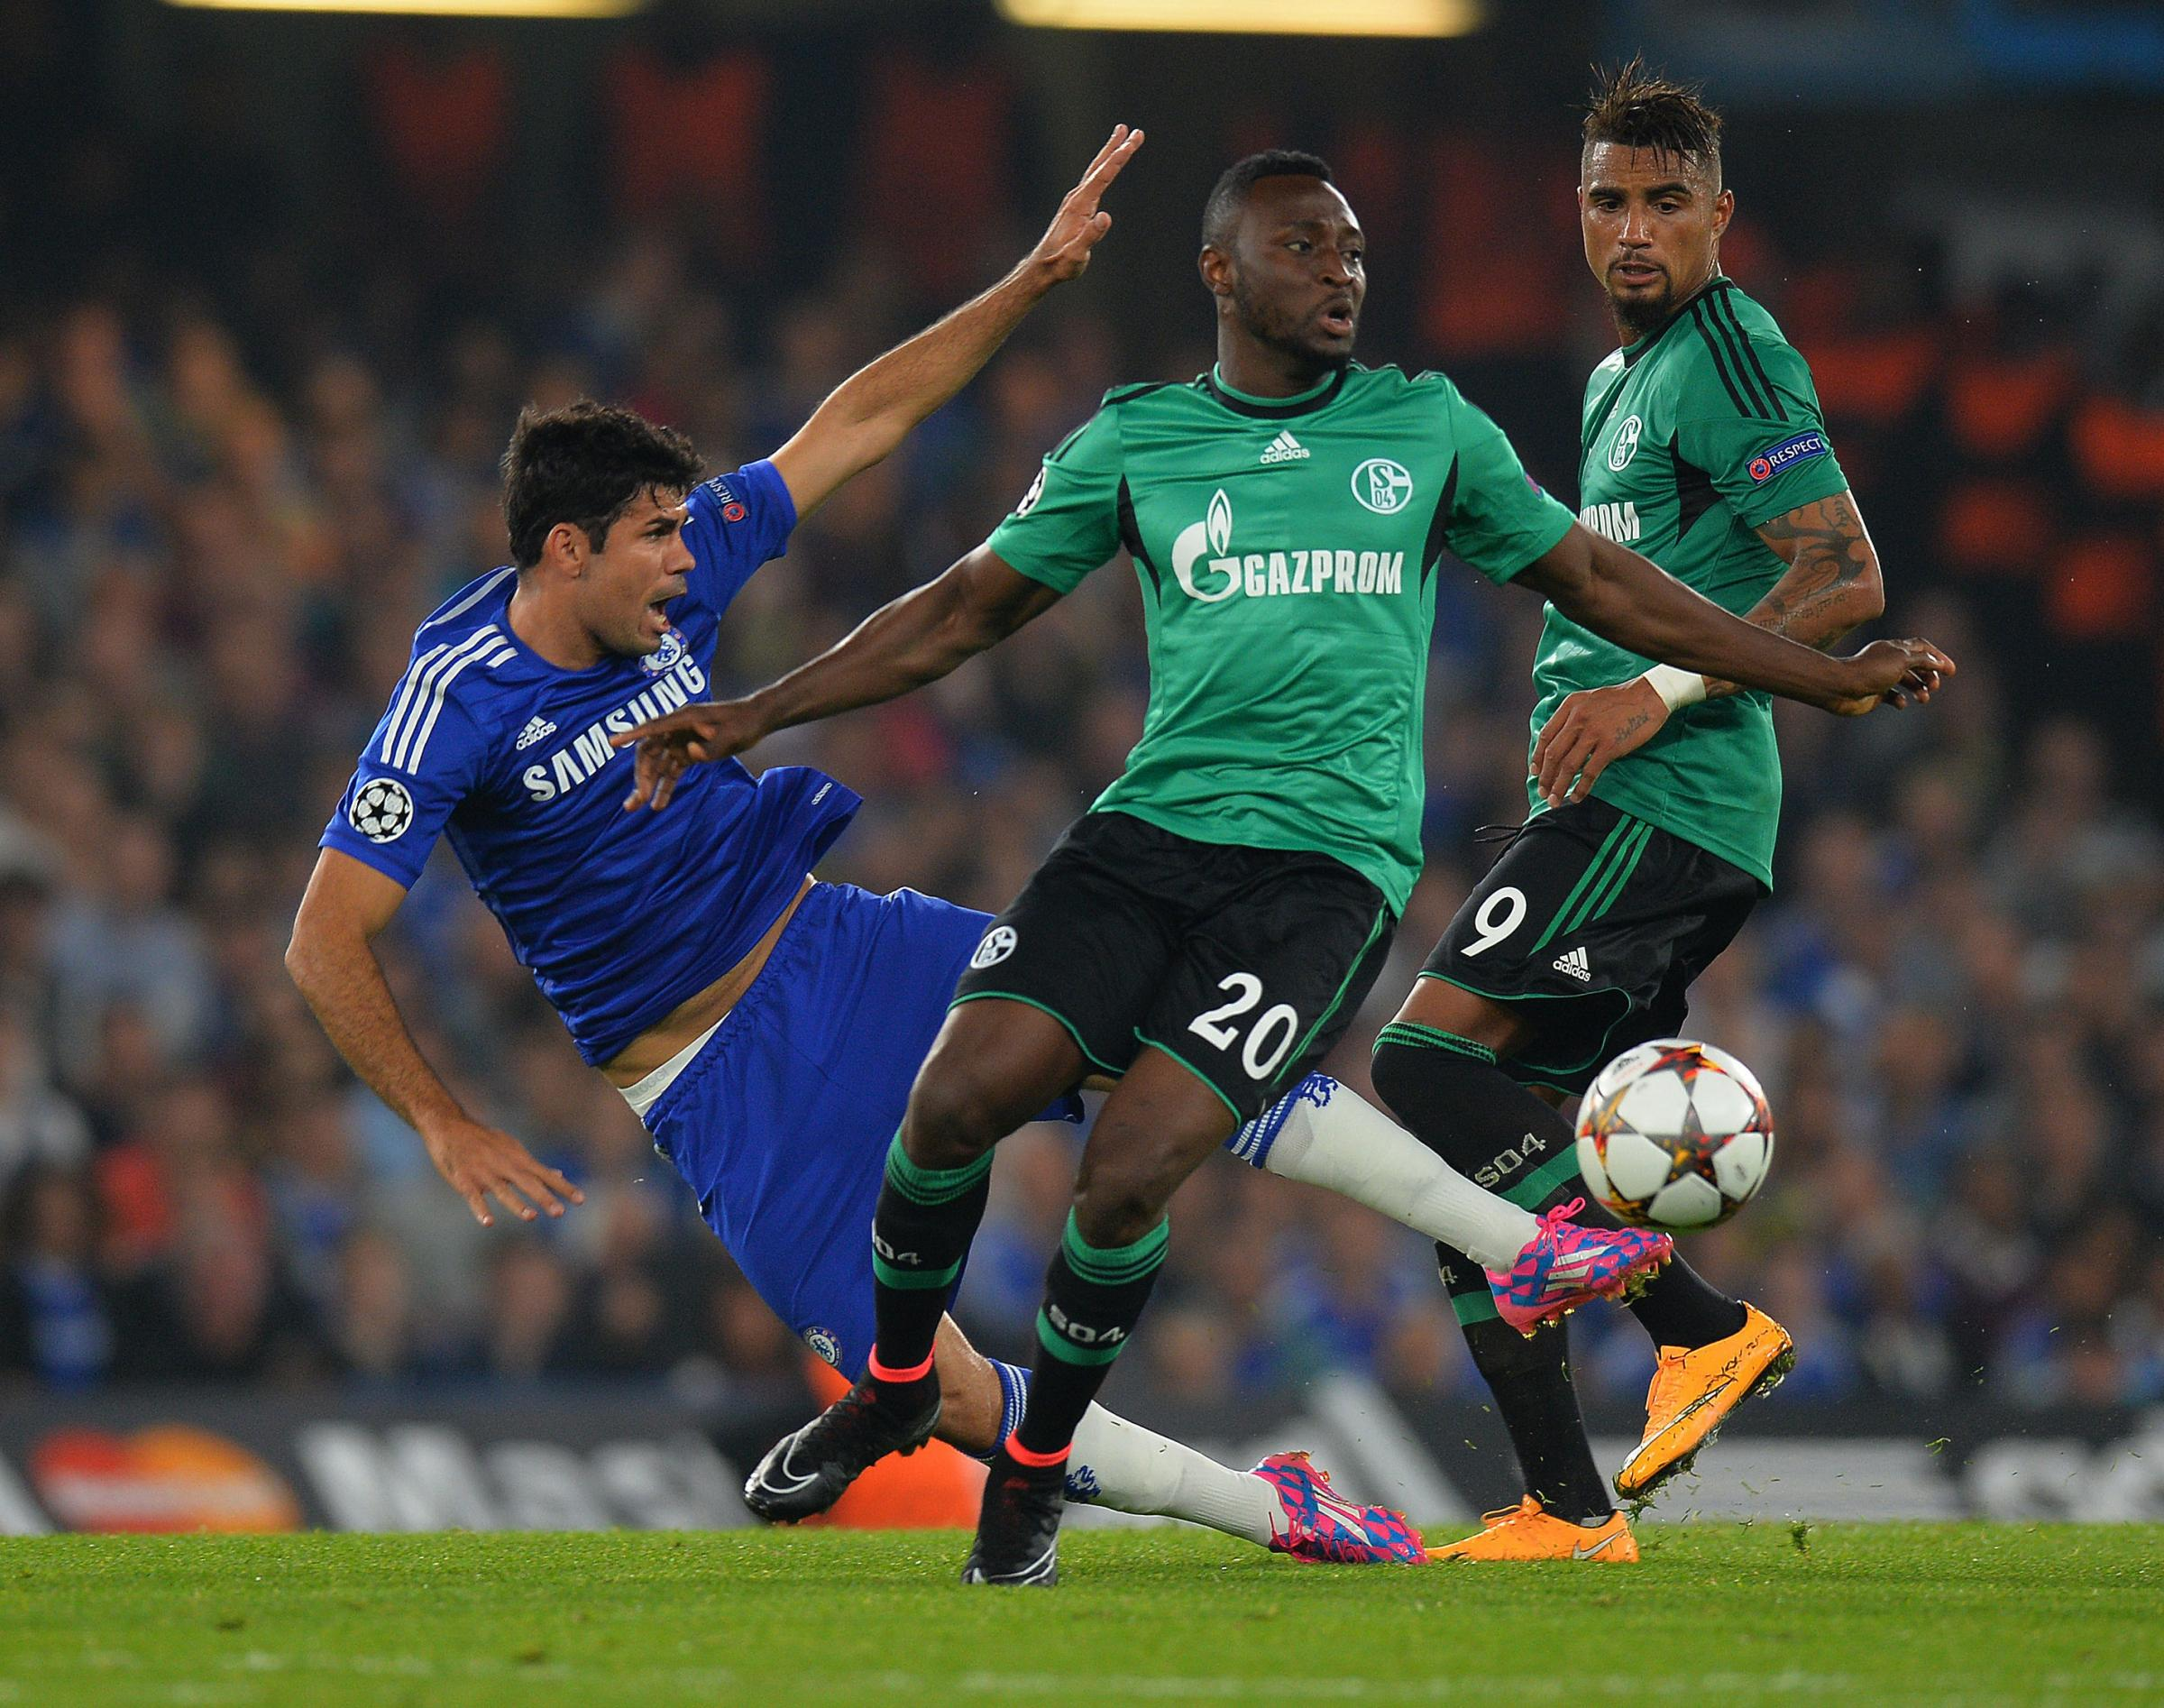 EURO STAR: Chinedu Obasi played Champions League football for Schalke